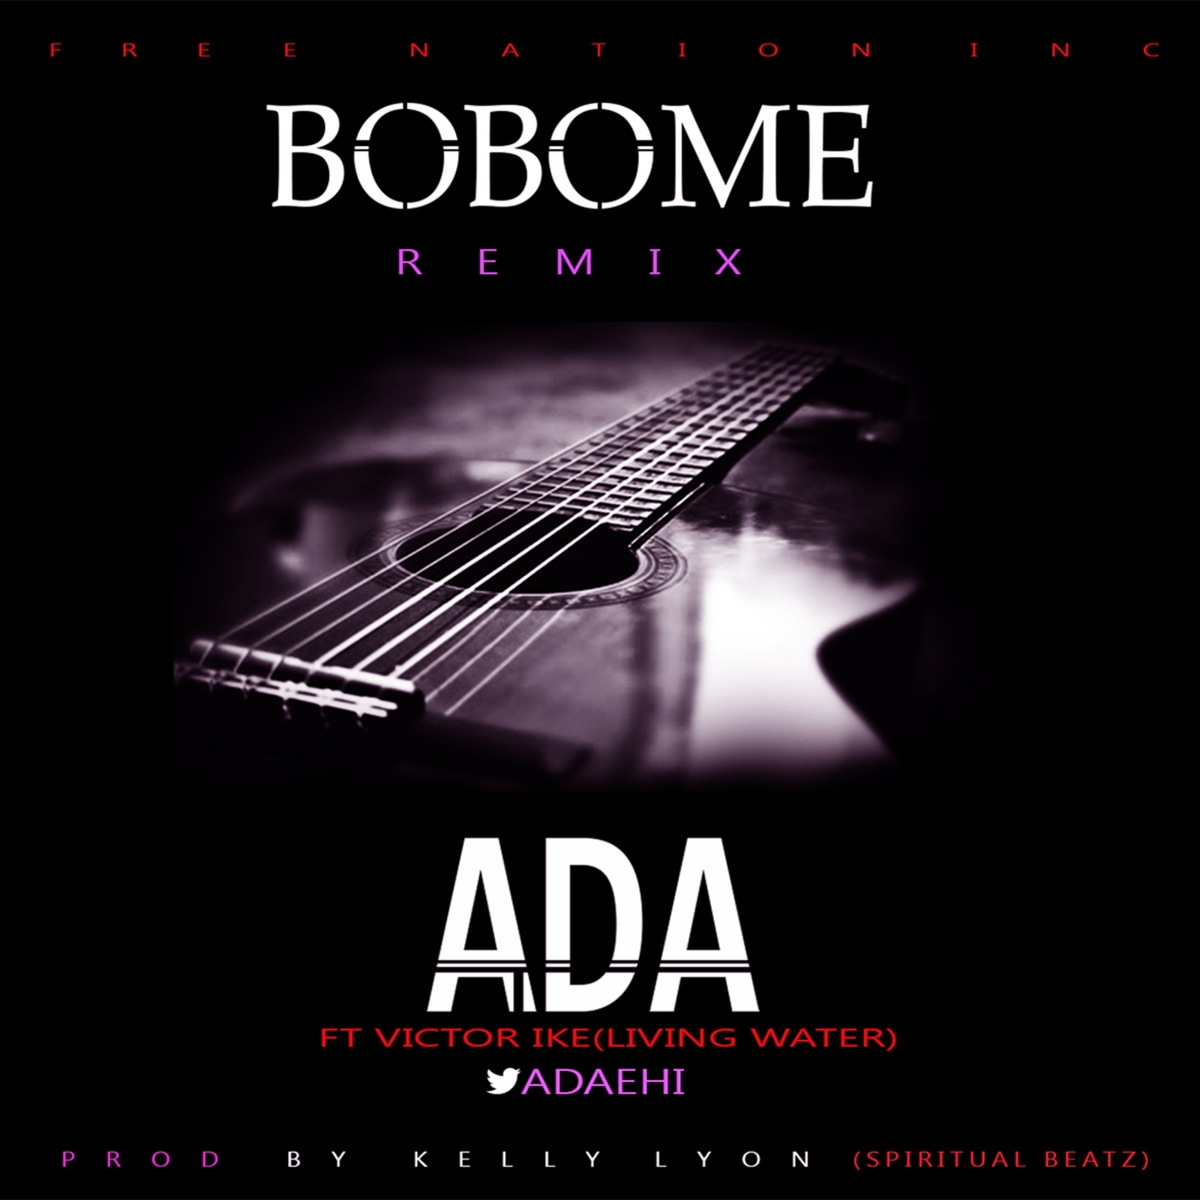 New Music: Ada – Bobo Me (Remix) Feat. Victor Ike (Prod by Kelly Lyonn)||@AdaEhi  @Viktorike  @FreeNationINC